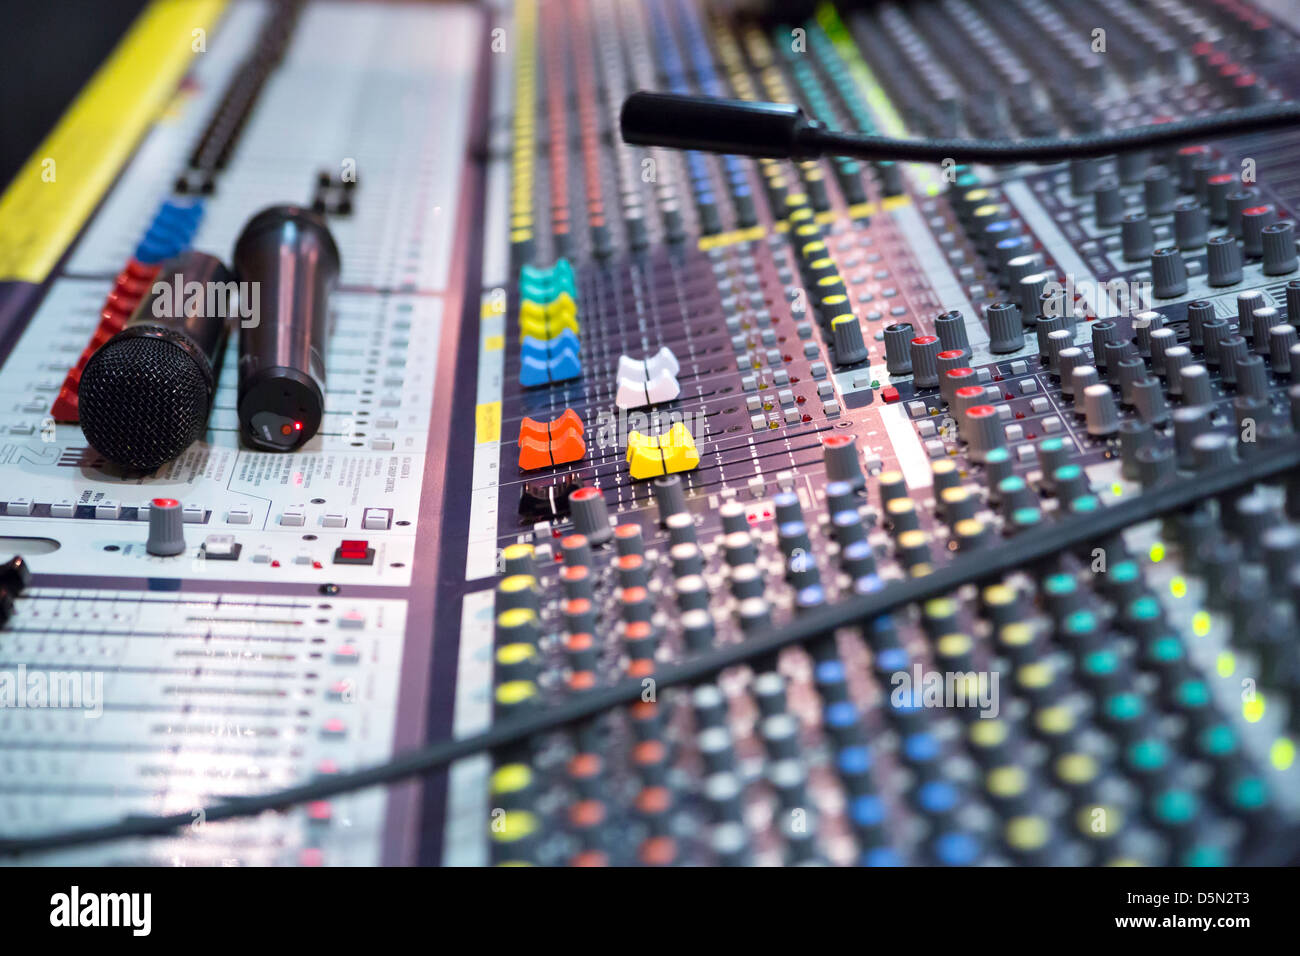 Ange view on sound mixer with regulation buttons - Stock Image